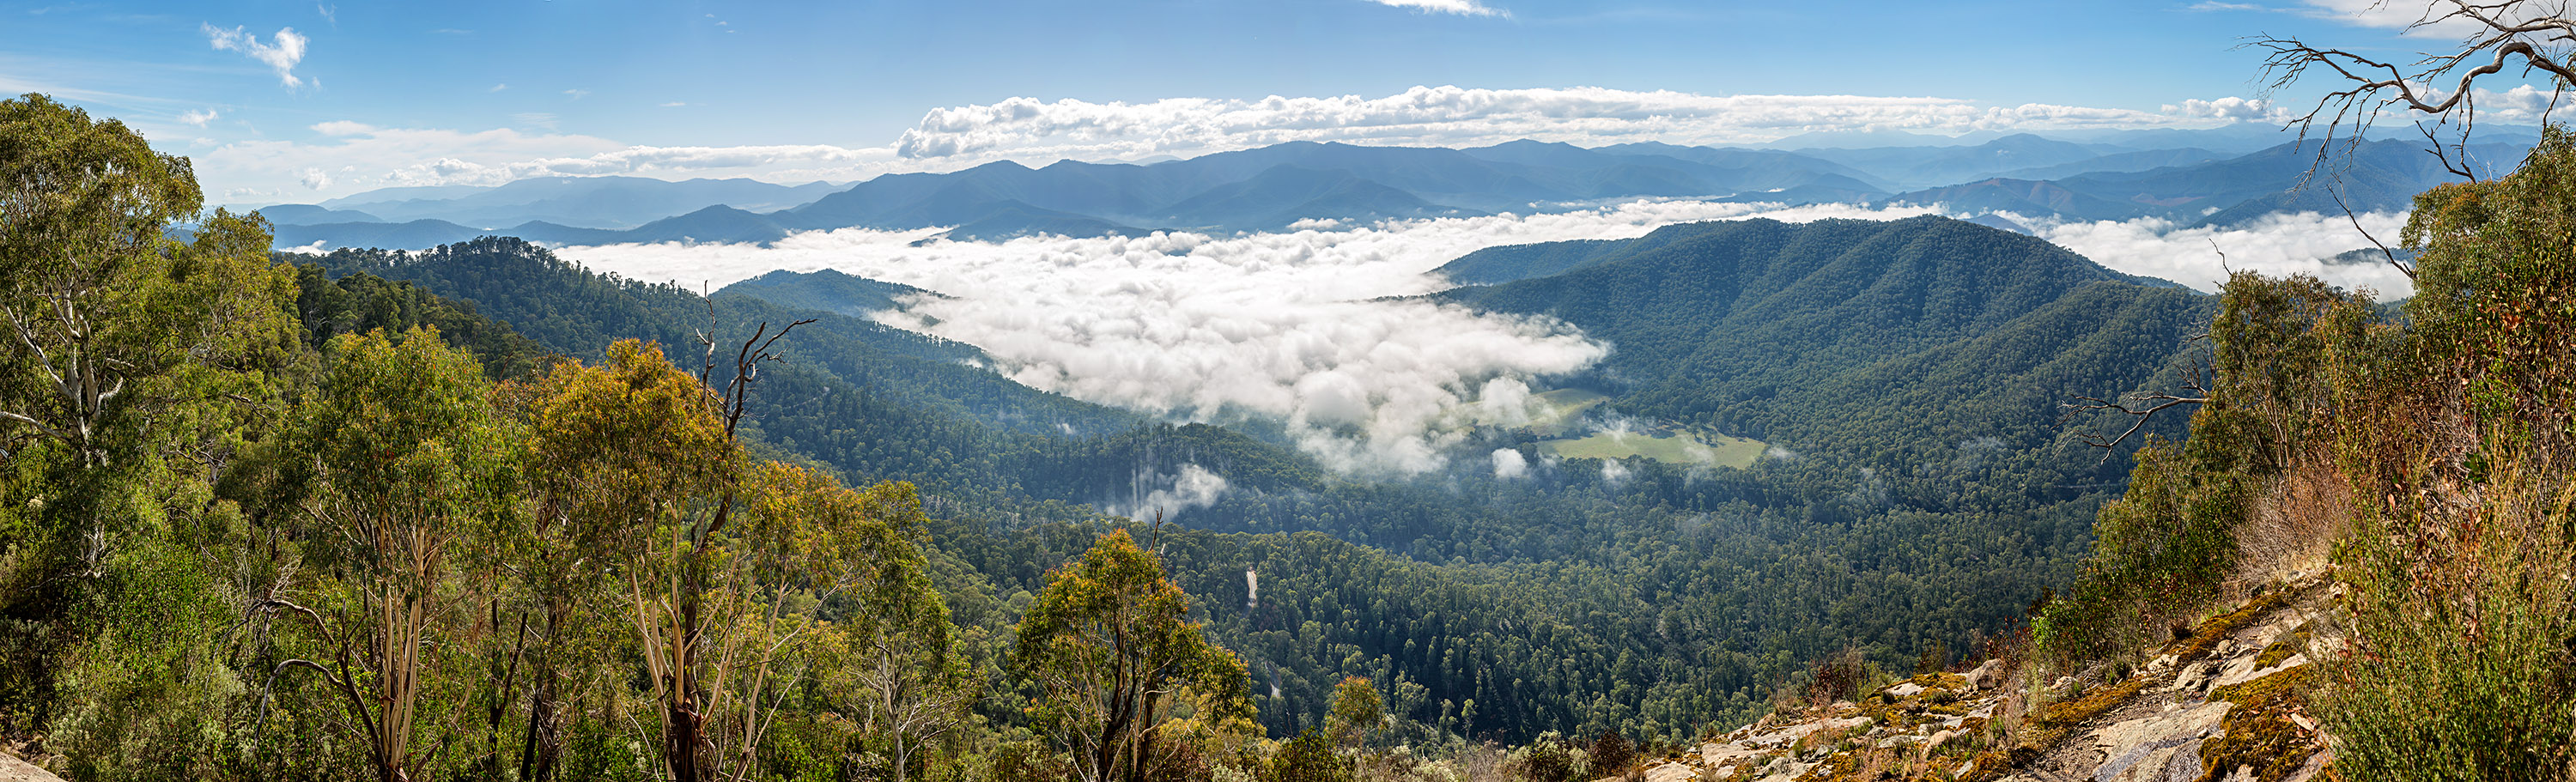 Image of Victorian High Country from Mt Buffalo